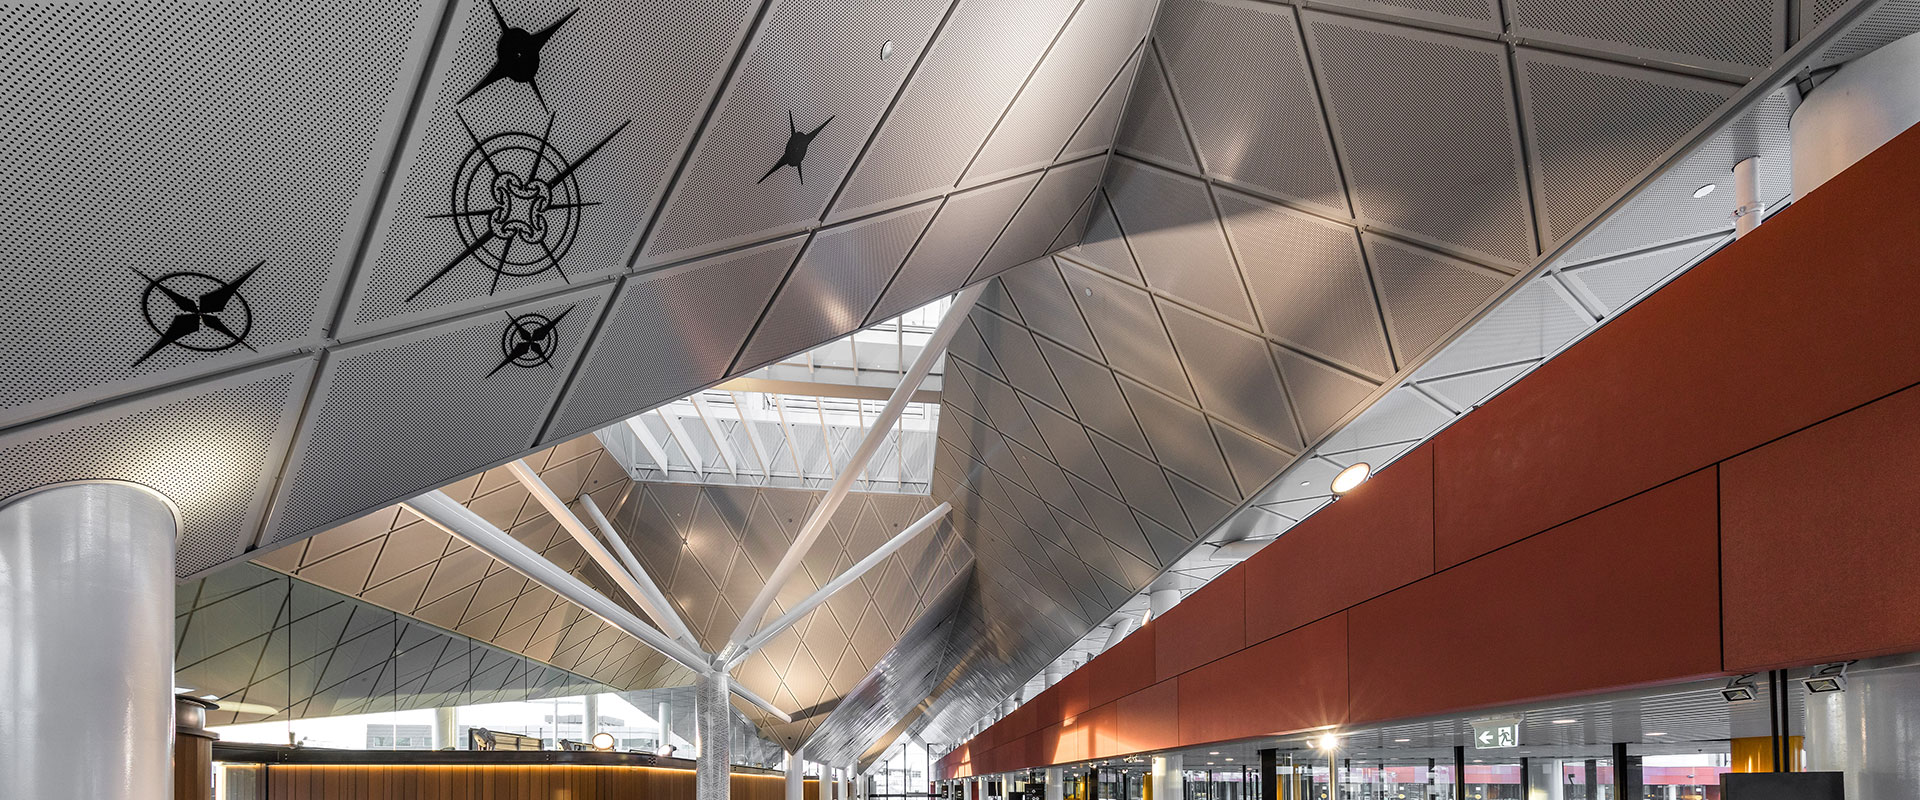 Exceptional Suspended Ceilings